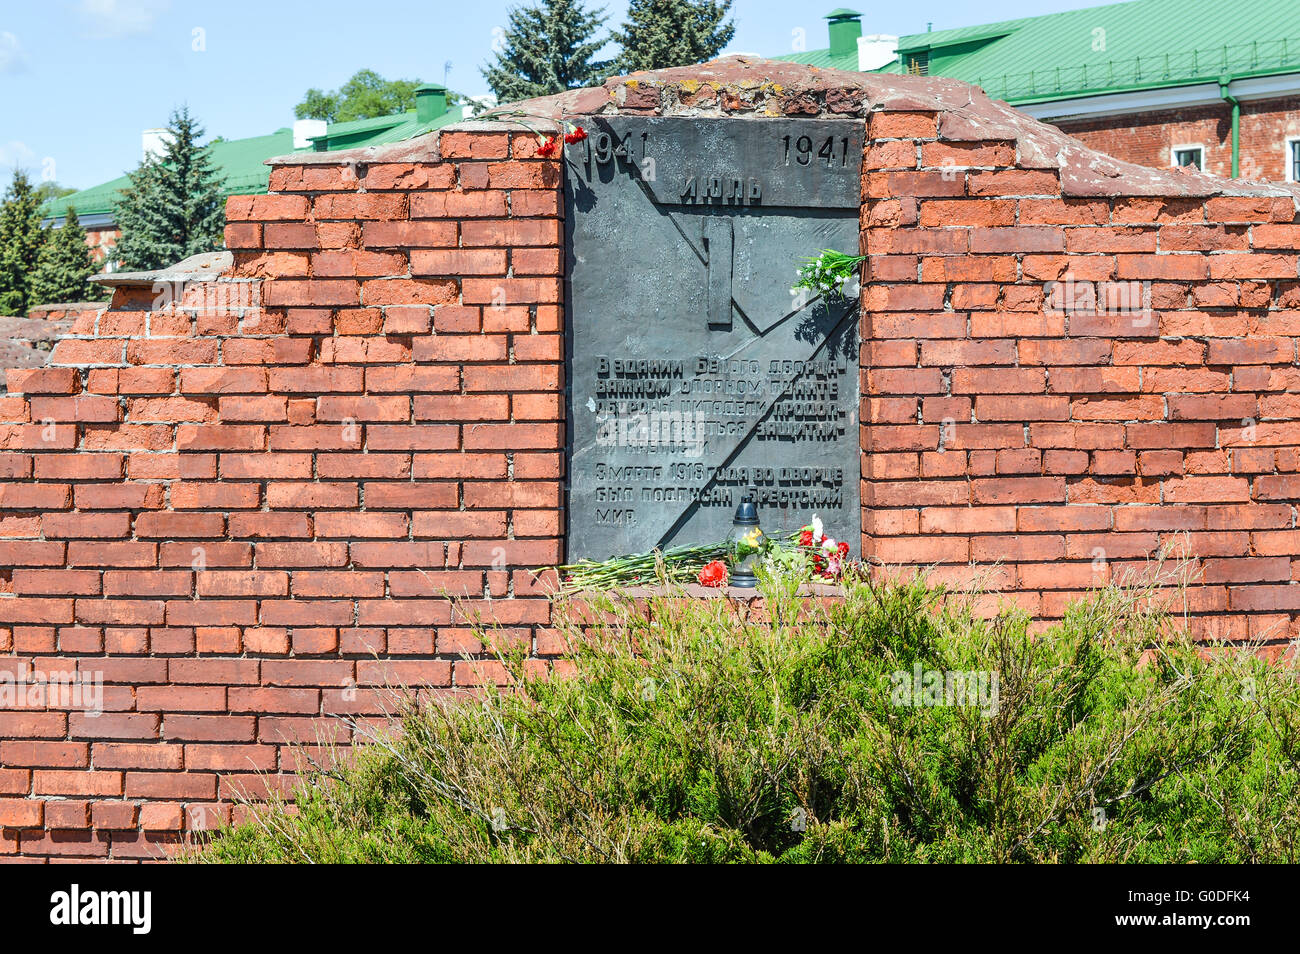 Brest, Belarus - May 9, 2015: The memorial plaque in the Brest Fortress. The translation is 'On 03 March 1918, - Stock Image